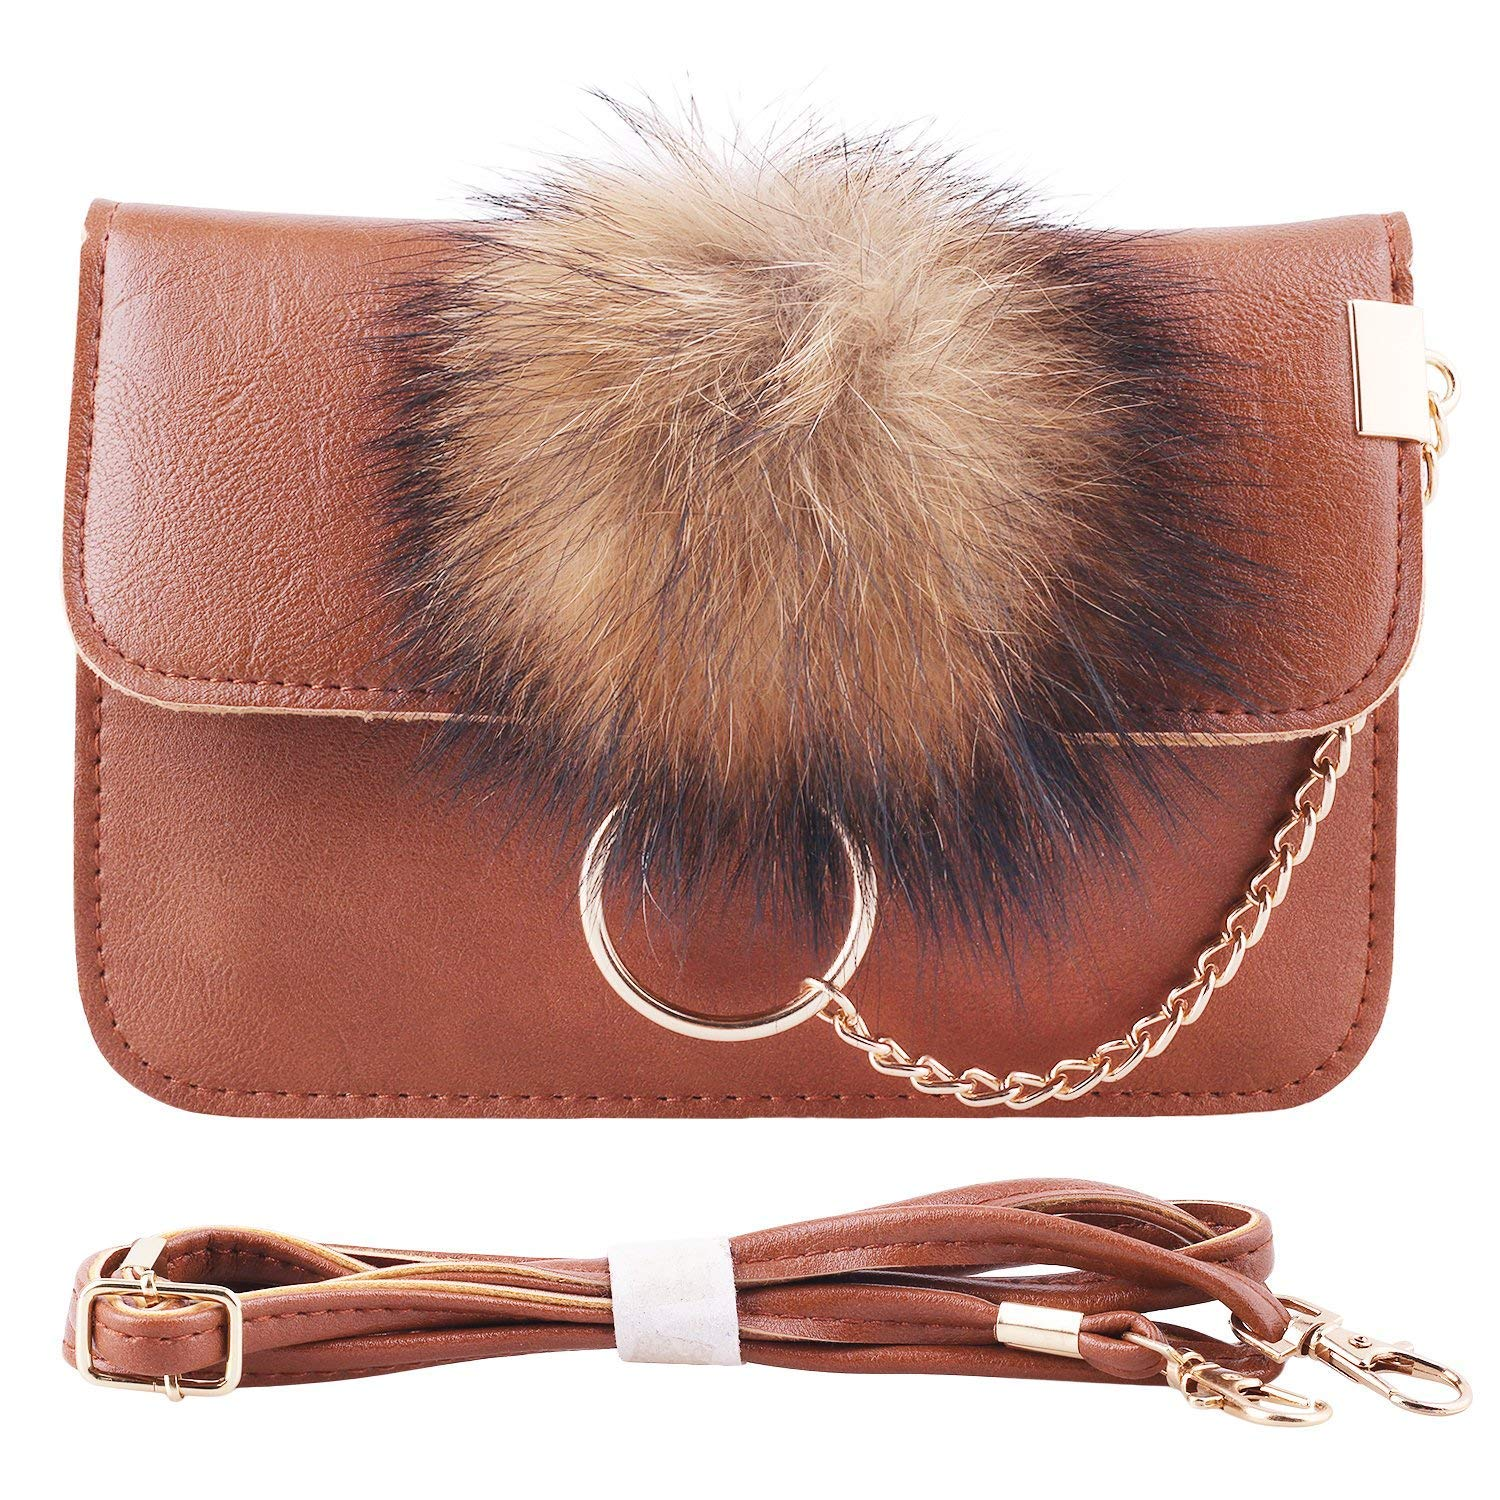 Cross Bag for Women, PU Leather Cell Phone Bag with Plush Ball Accessories Shoulder Bag Wallet for Girls